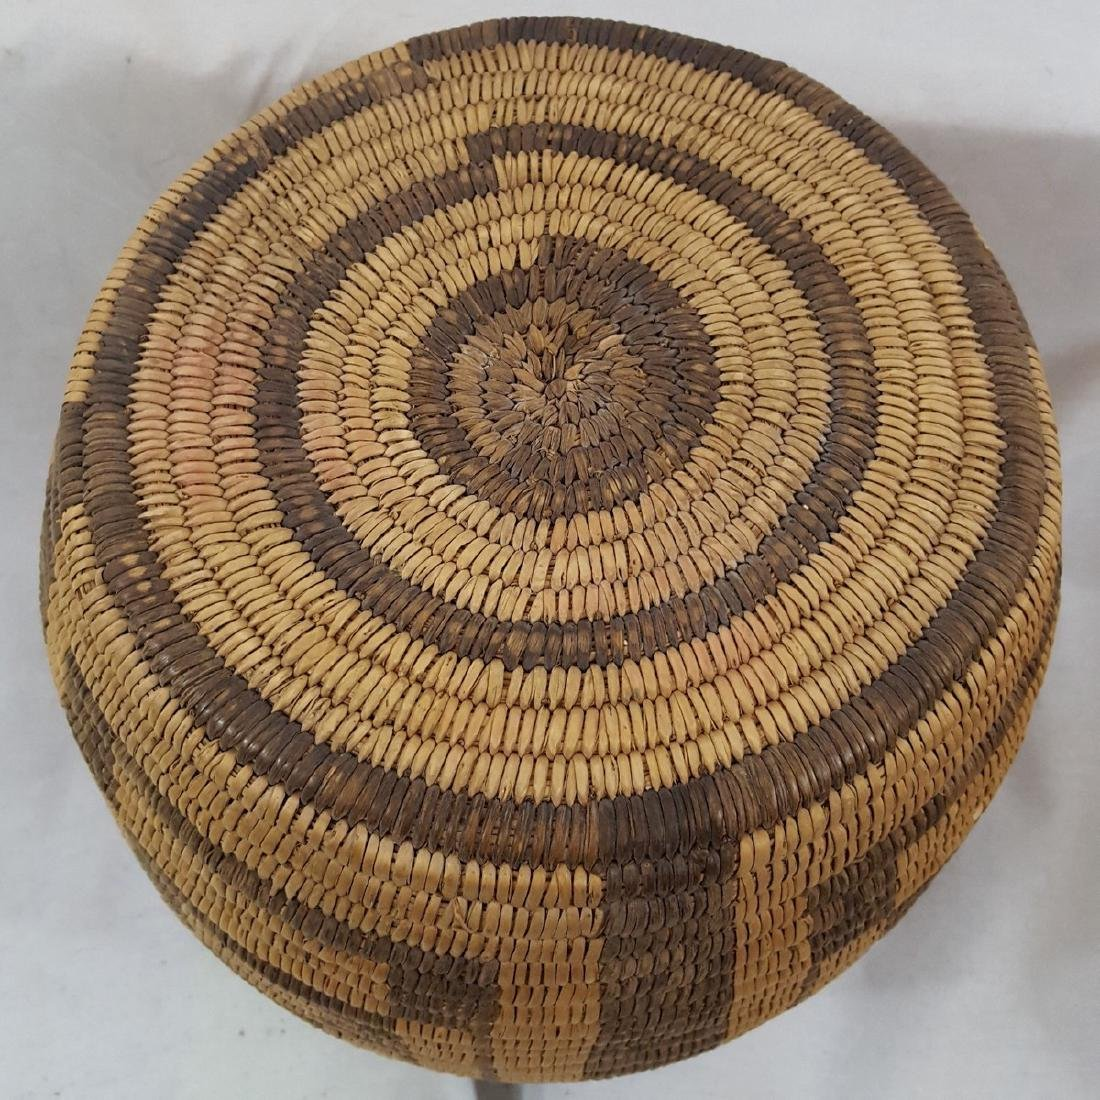 Tall Pima Indian Woven Basket Ca 1920's - 3